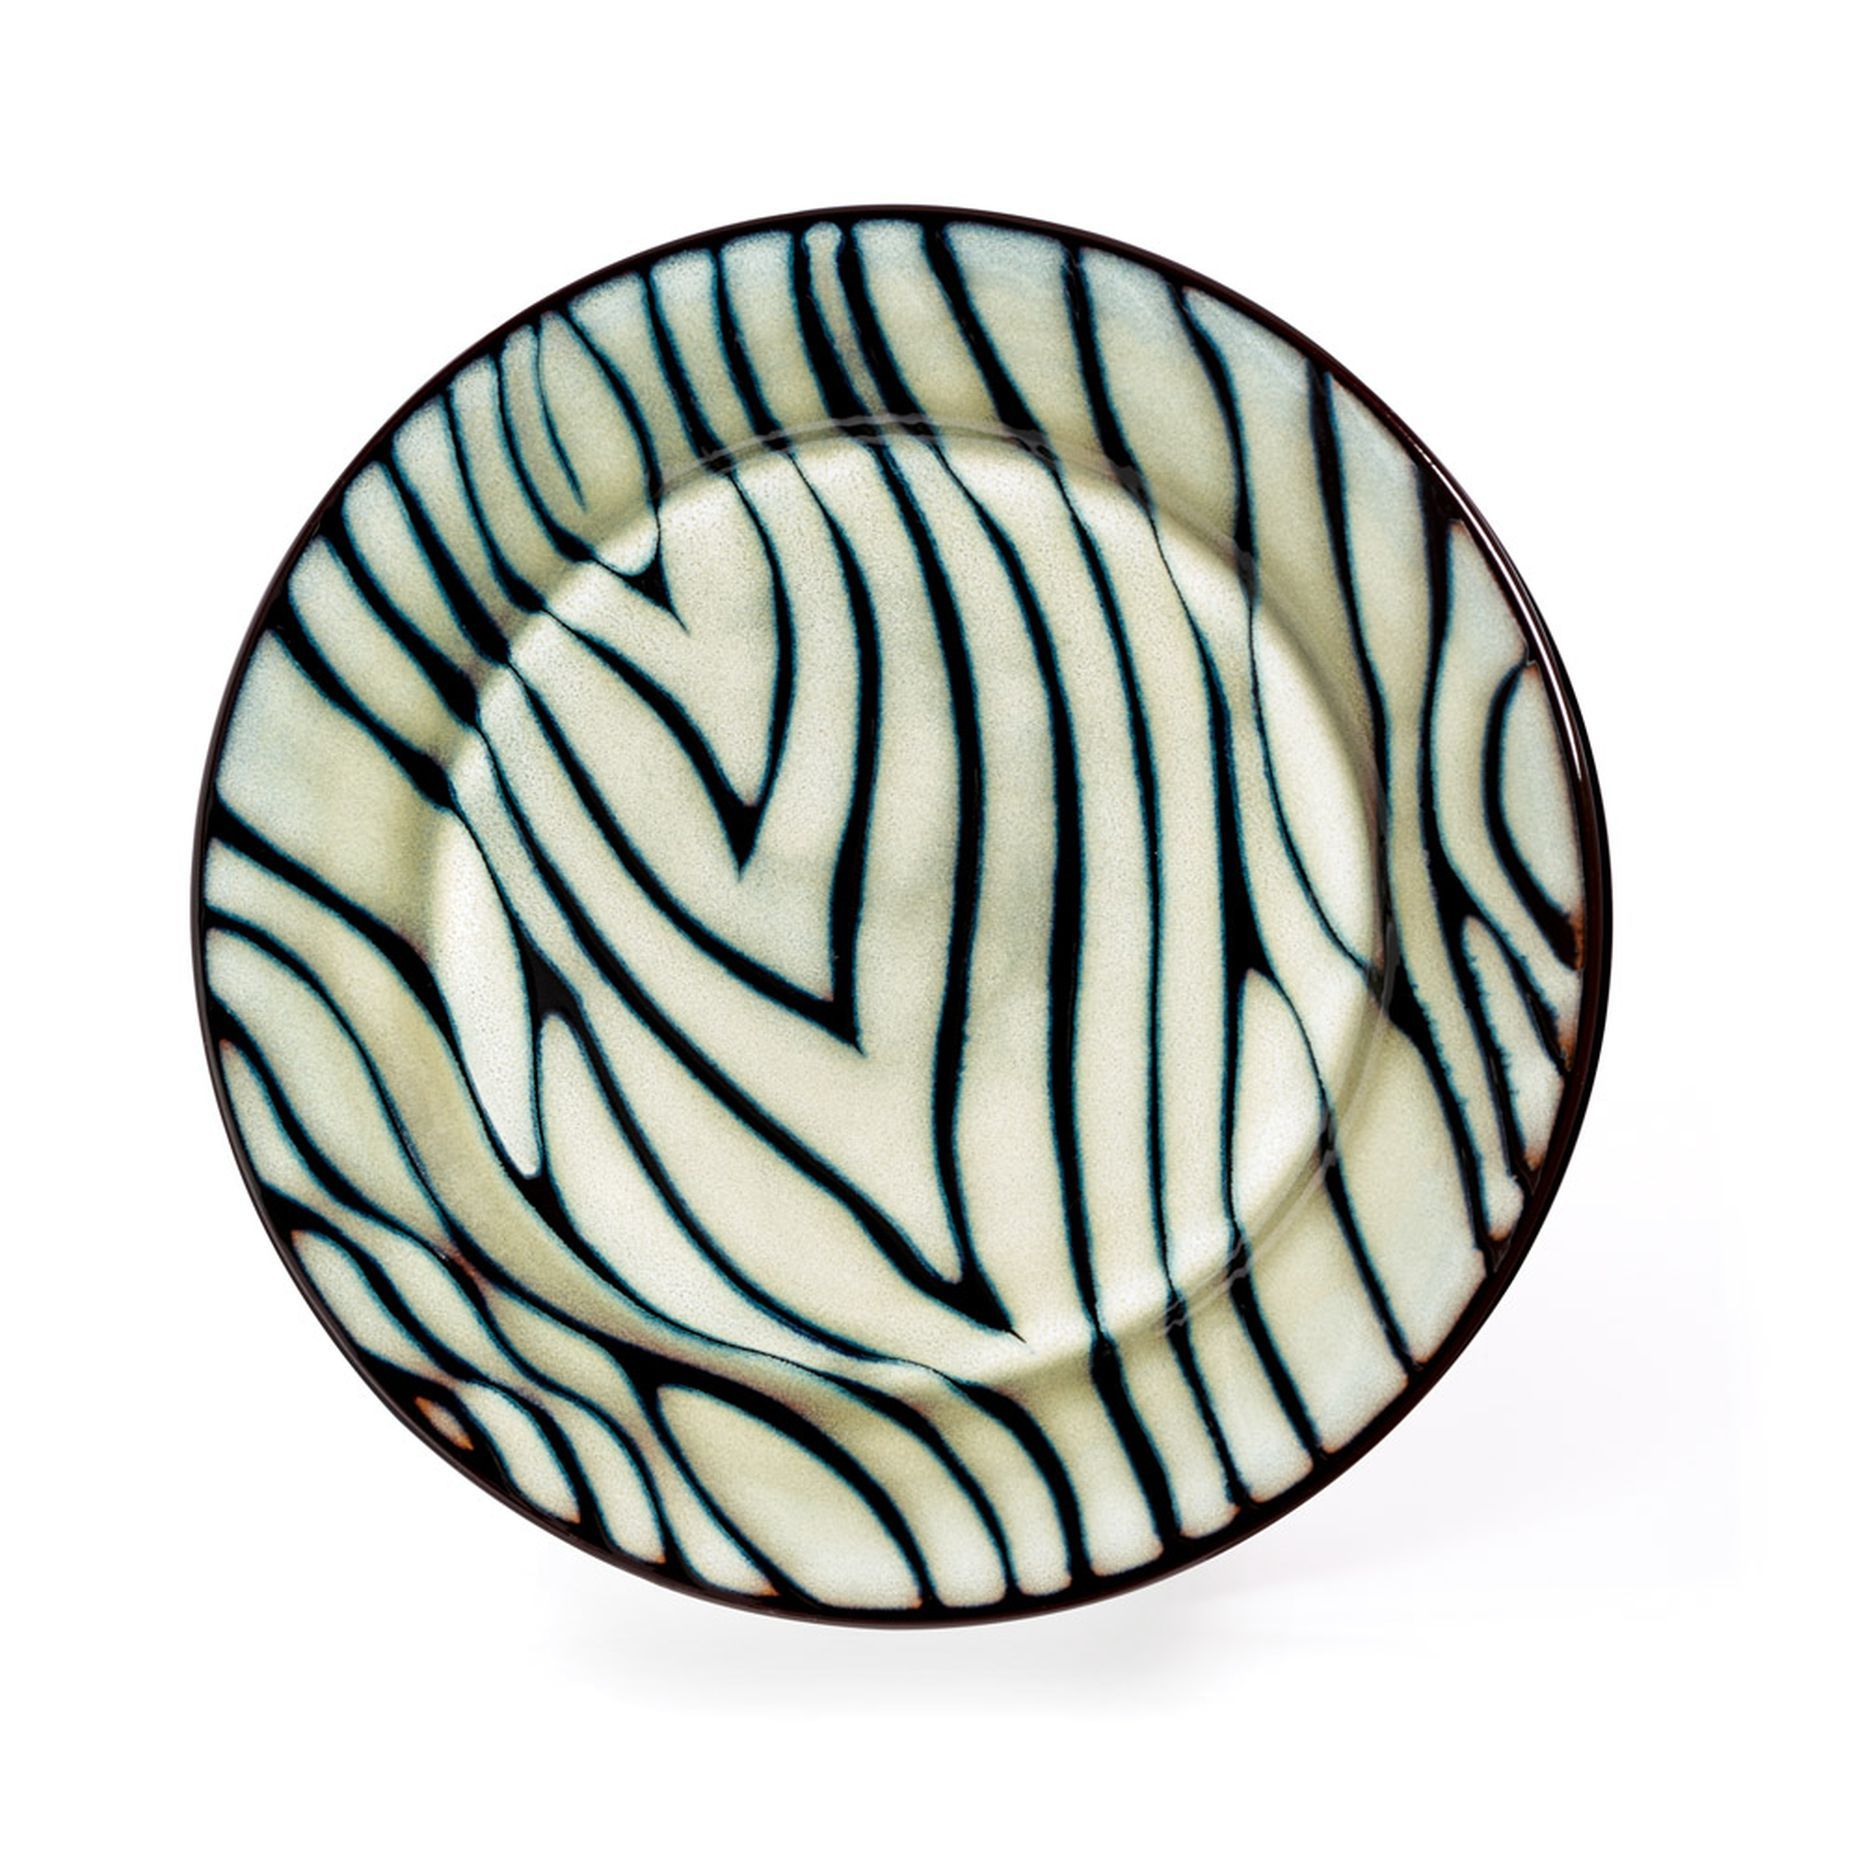 Congo Dinner Plate Zebra Print  sc 1 st  Pinterest & Congo Dinner Plate Zebra Print | Mommy Loves Kenzie! | Pinterest ...